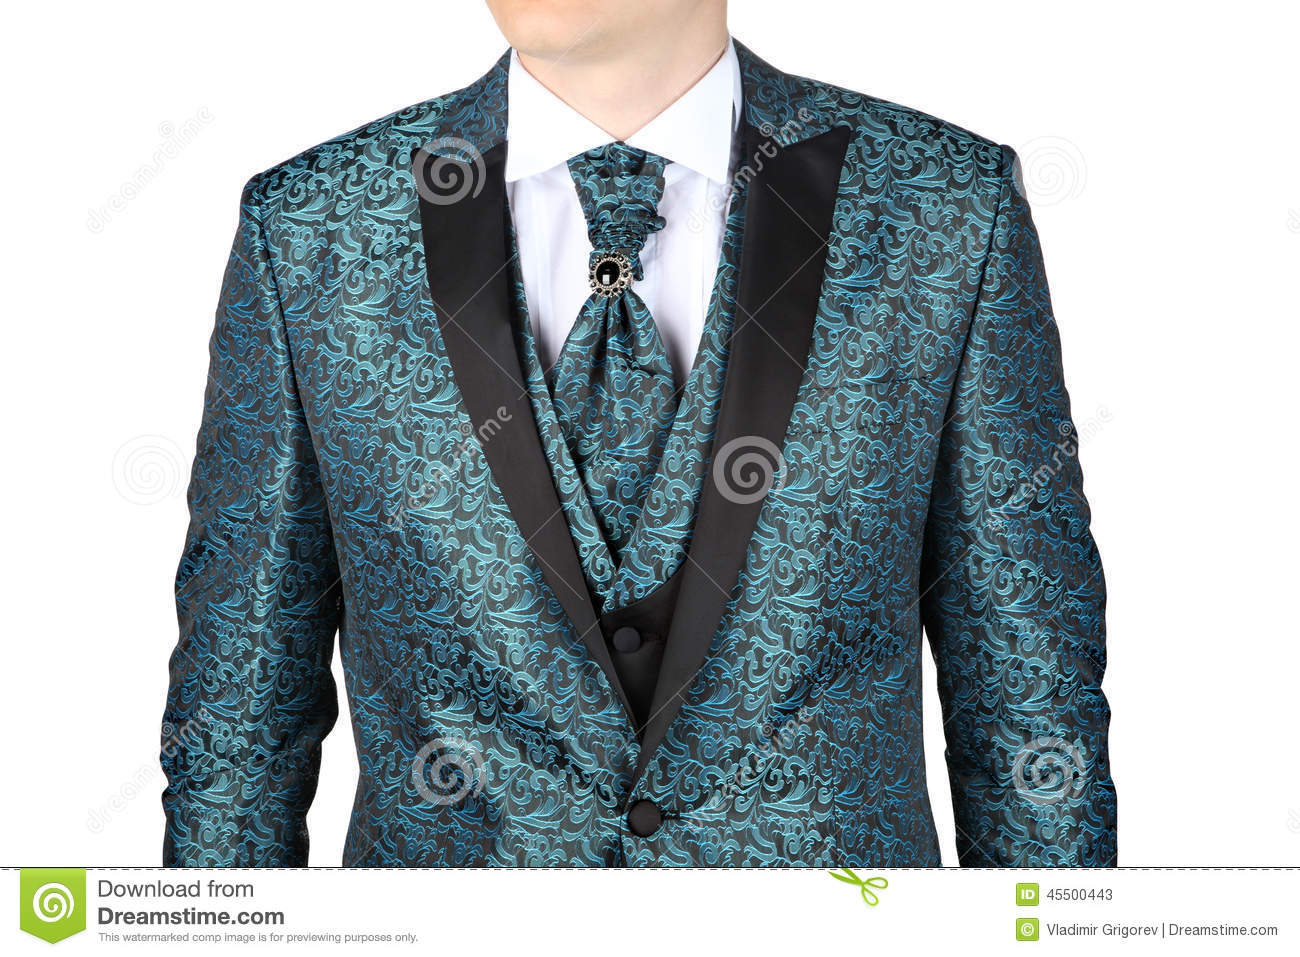 Patterned Suit Jacket - Go Suits